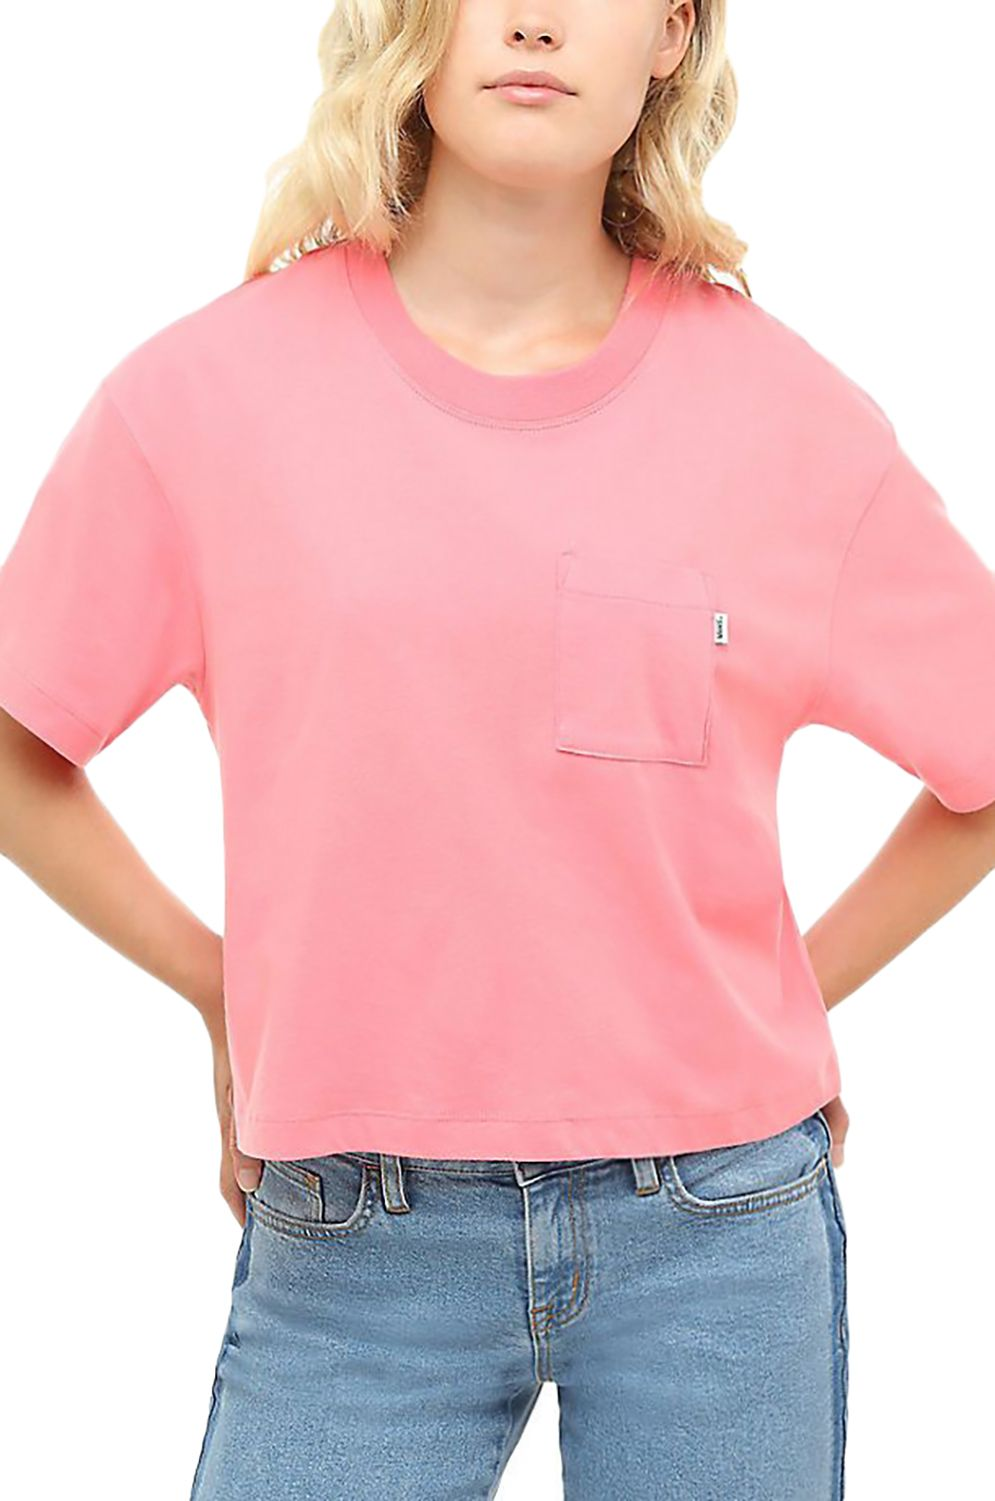 Vans T-Shirt BRUSH OFF TOP Strawberry Pink